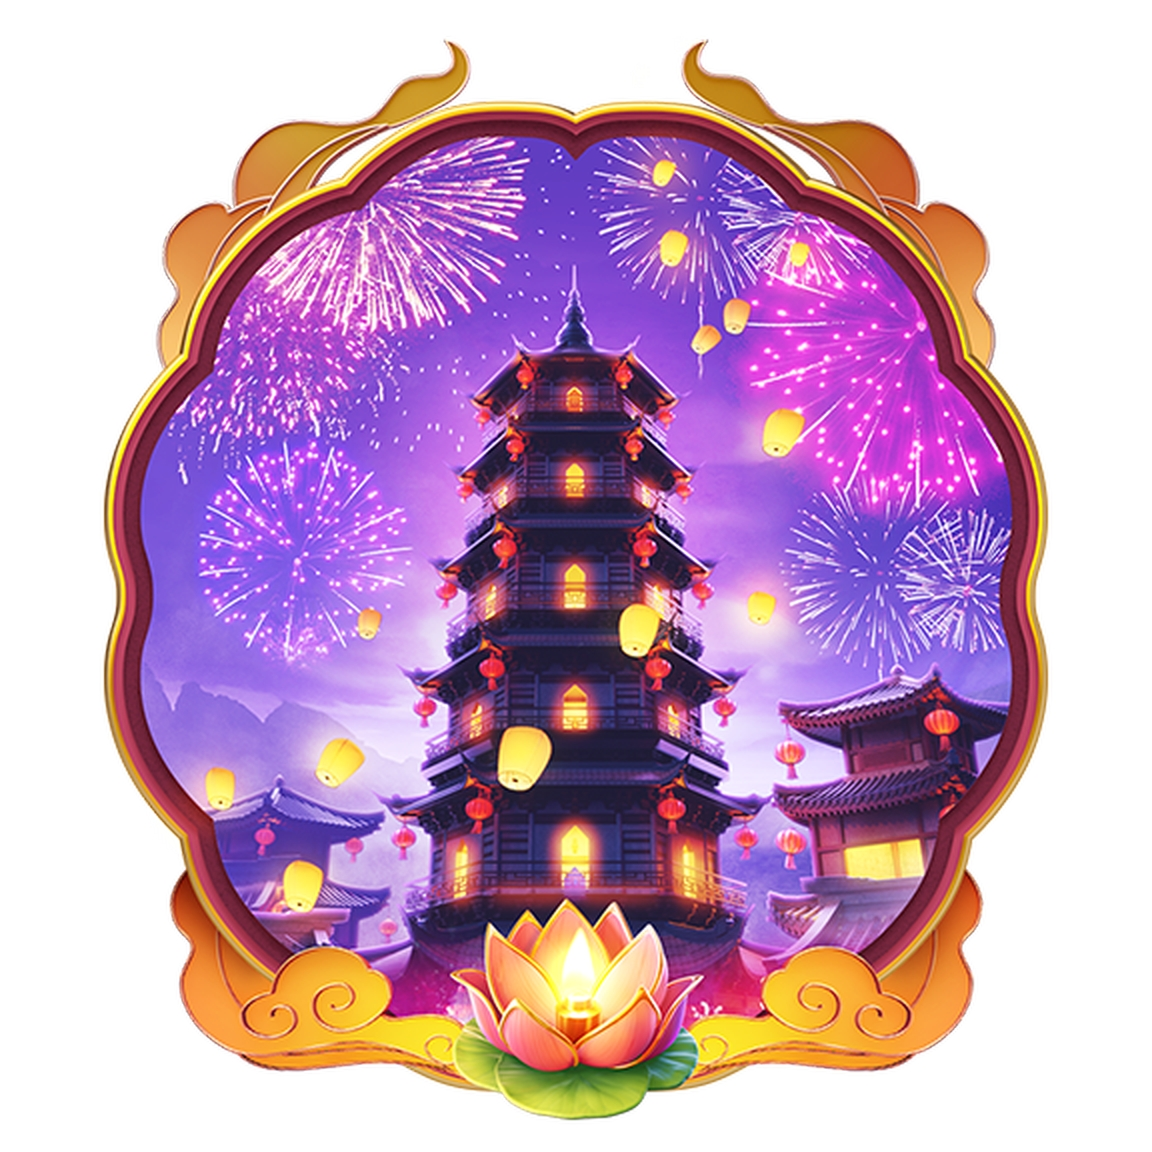 The Wild Fireworks Online Slot Demo Game by PG Soft